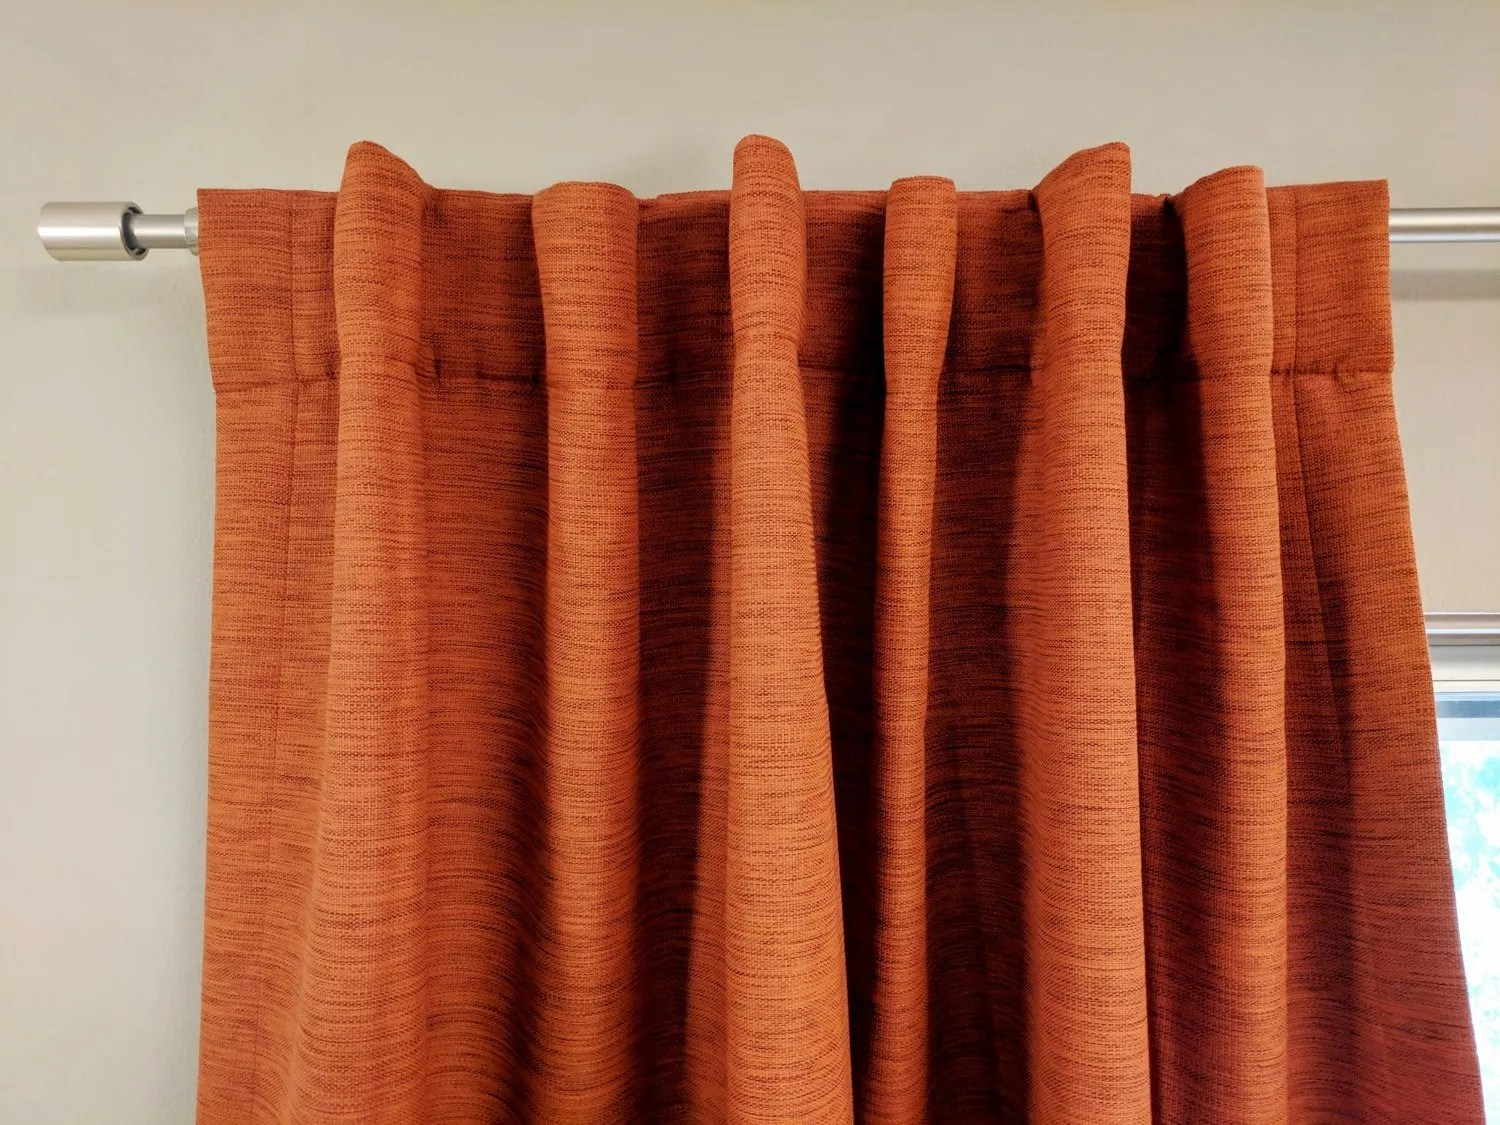 How to find mid century modern style curtains - What is mid century modern ...